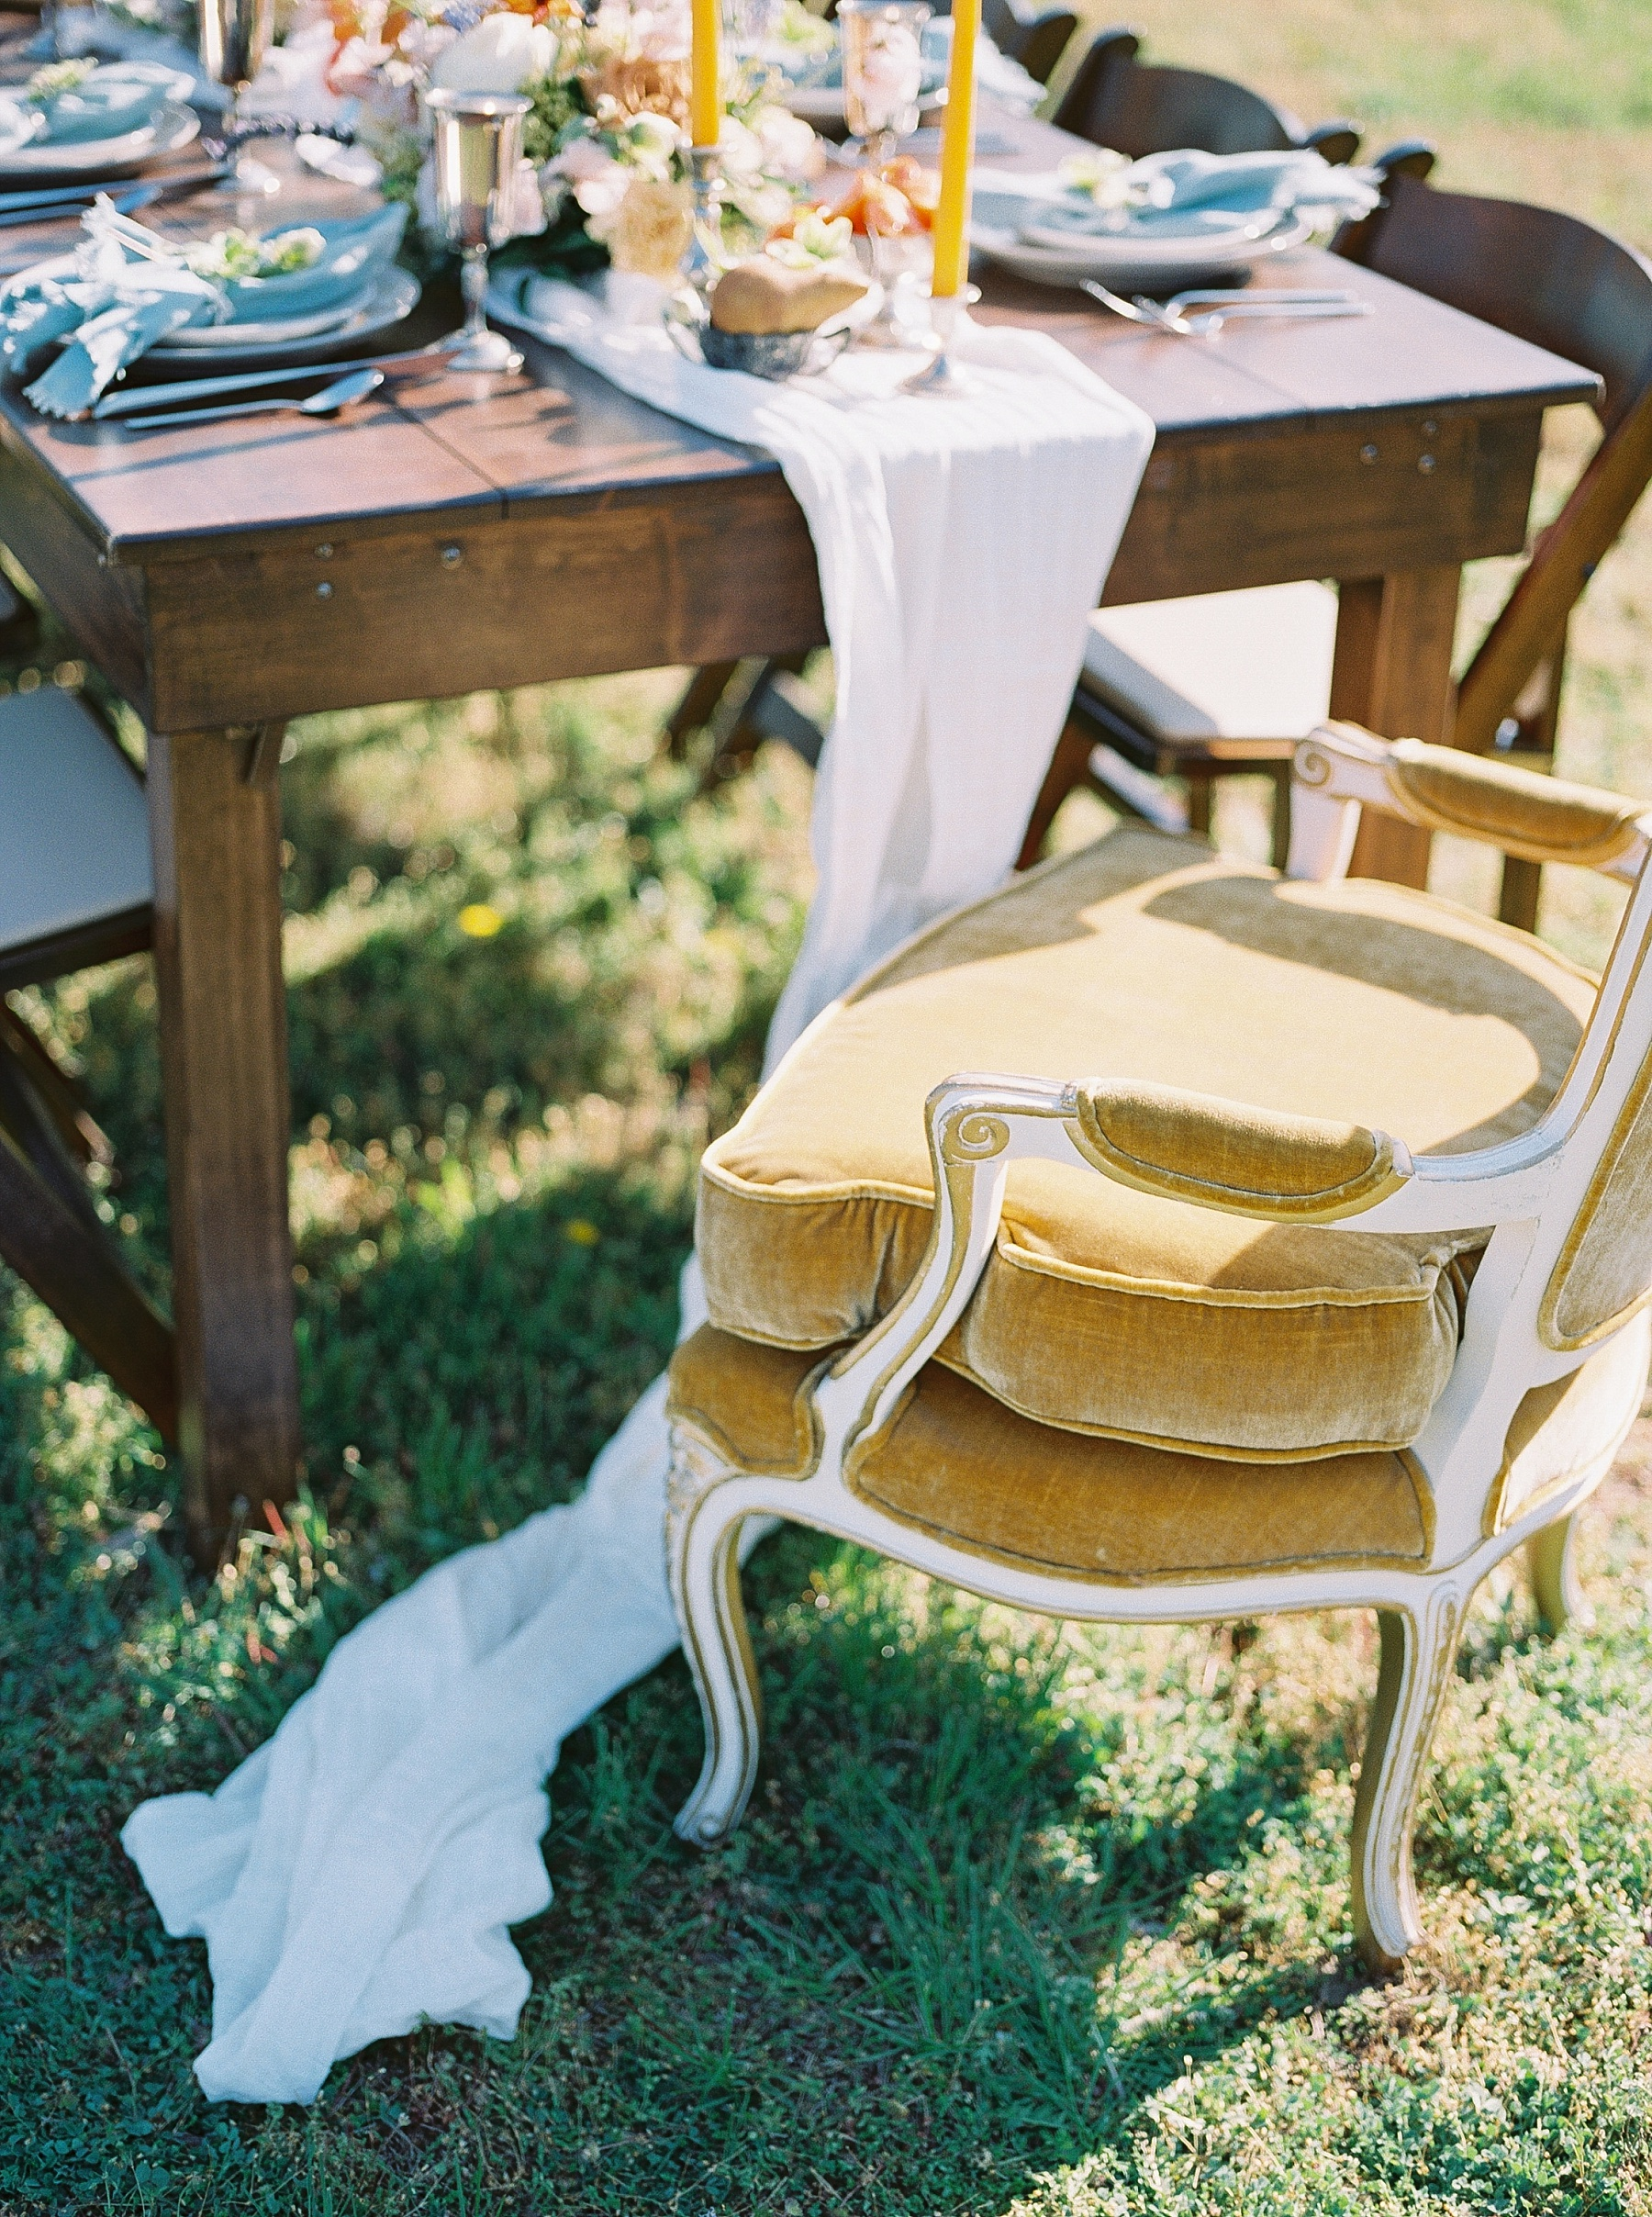 Intimate Spanish and French Inspired Destination Wedding with Lakeside Dinner Party at Dusk at Wildcliff by Kelsi Kliethermes Photography Best Missouri and Maui Wedding Photographer_0071.jpg